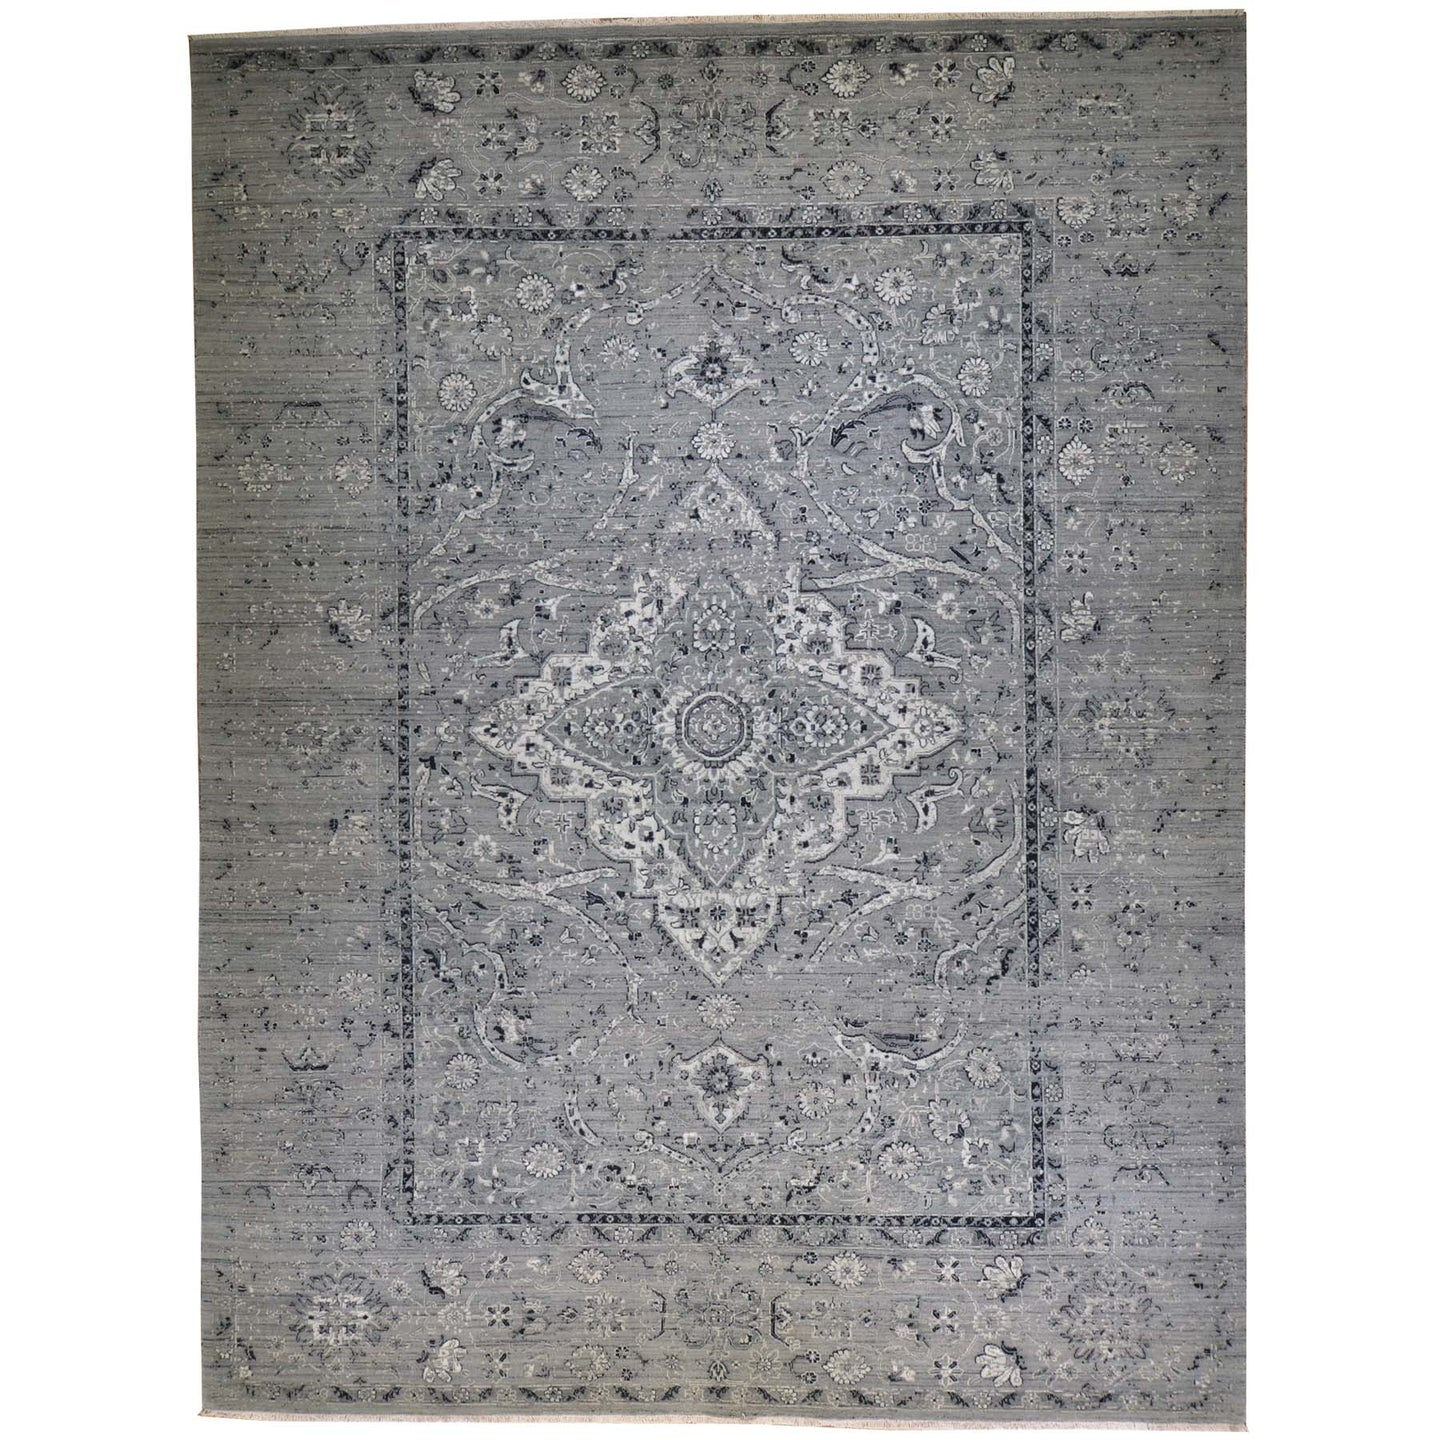 Fine Wool Silk Traditional Design Handmade Rug (Size 9.1 X 12.2) Brral-6378